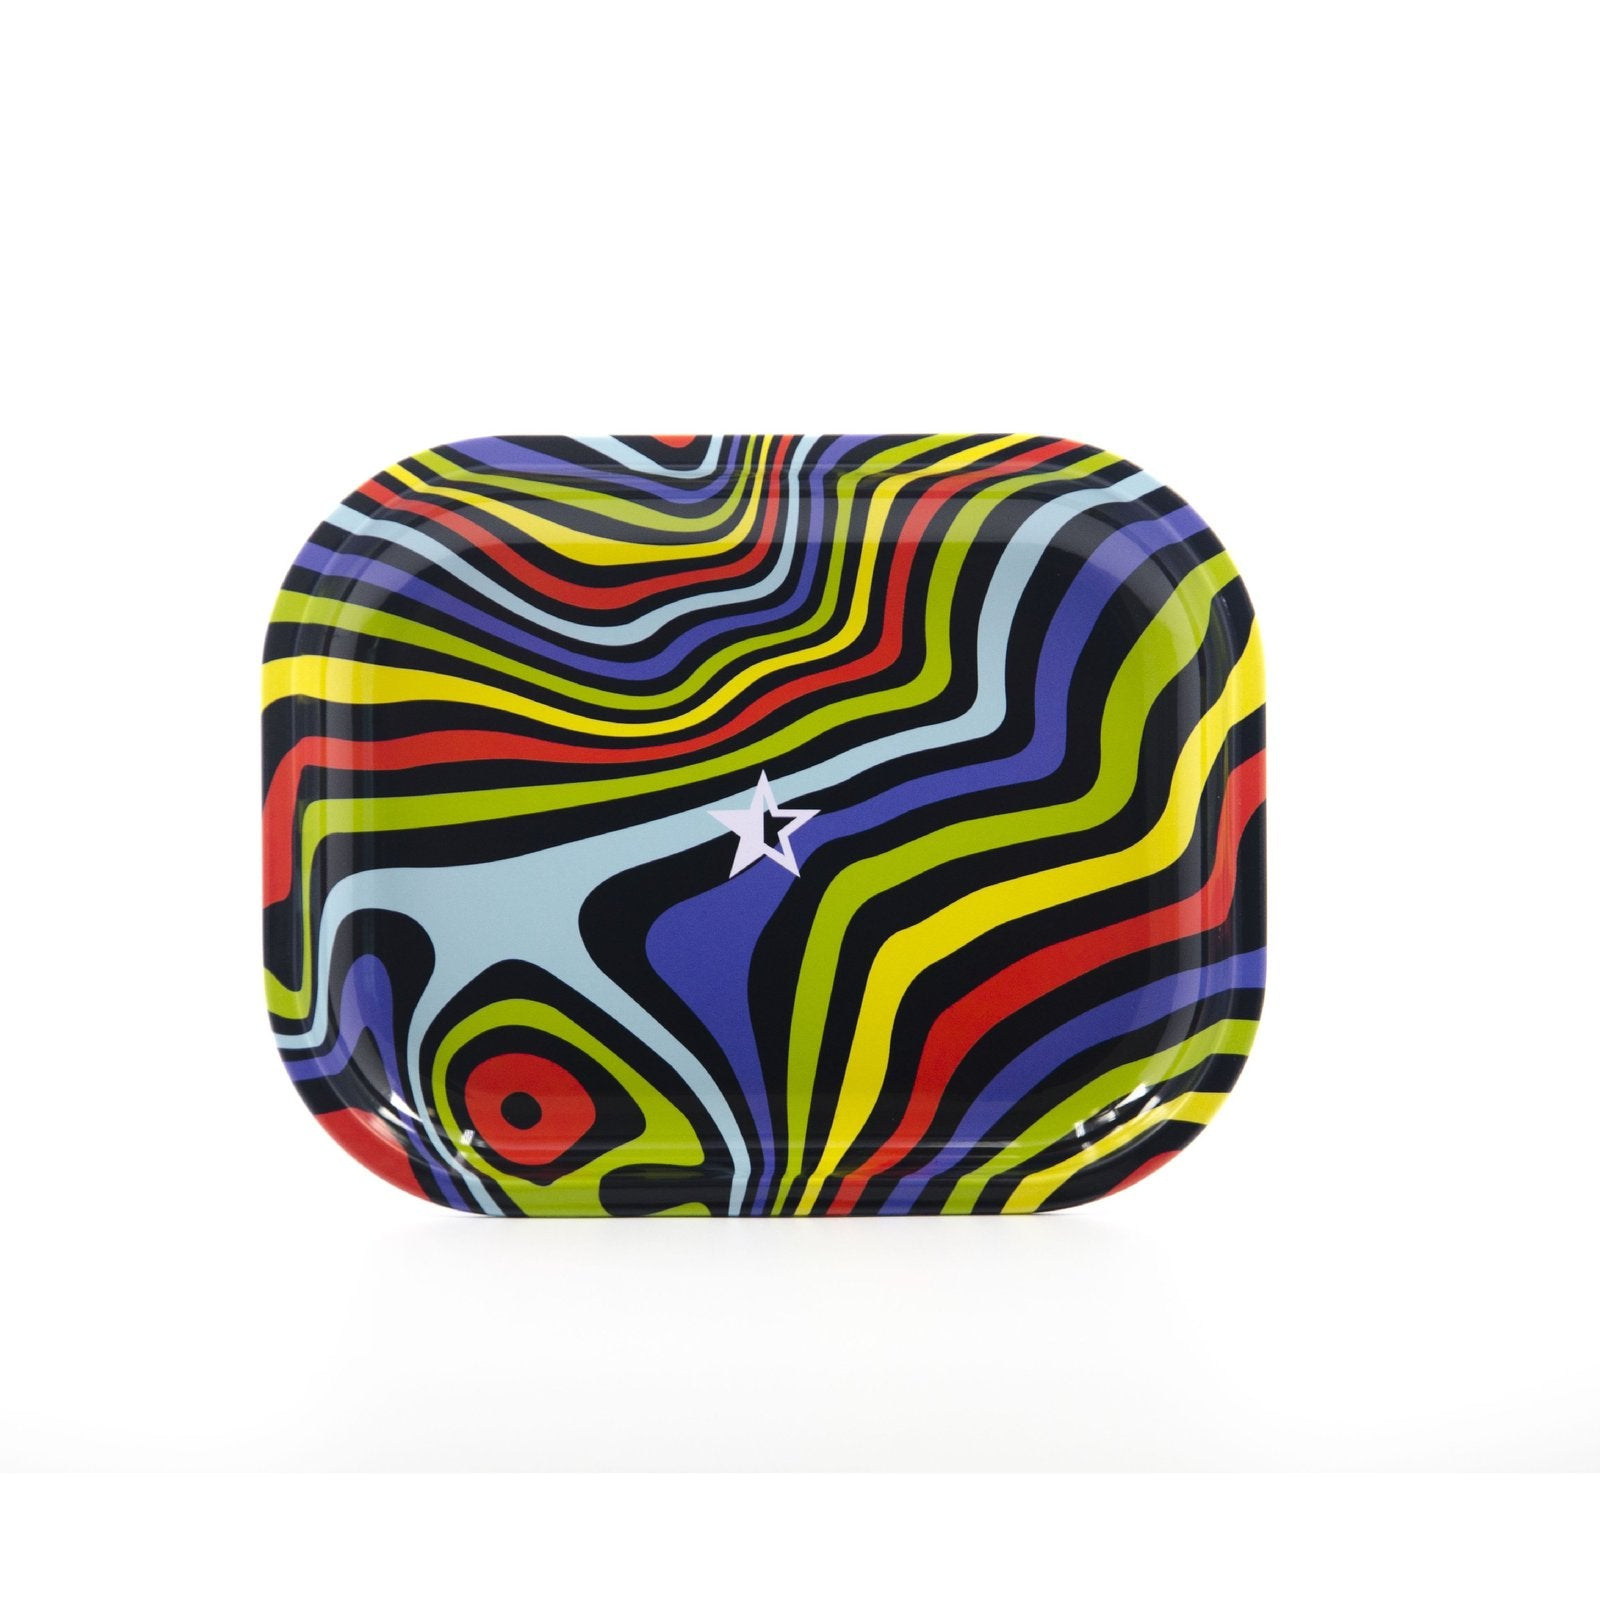 Famous Design Amnesia Rolling Tray - Small or Medium Tray - (1 Count) - Lake shore vibe